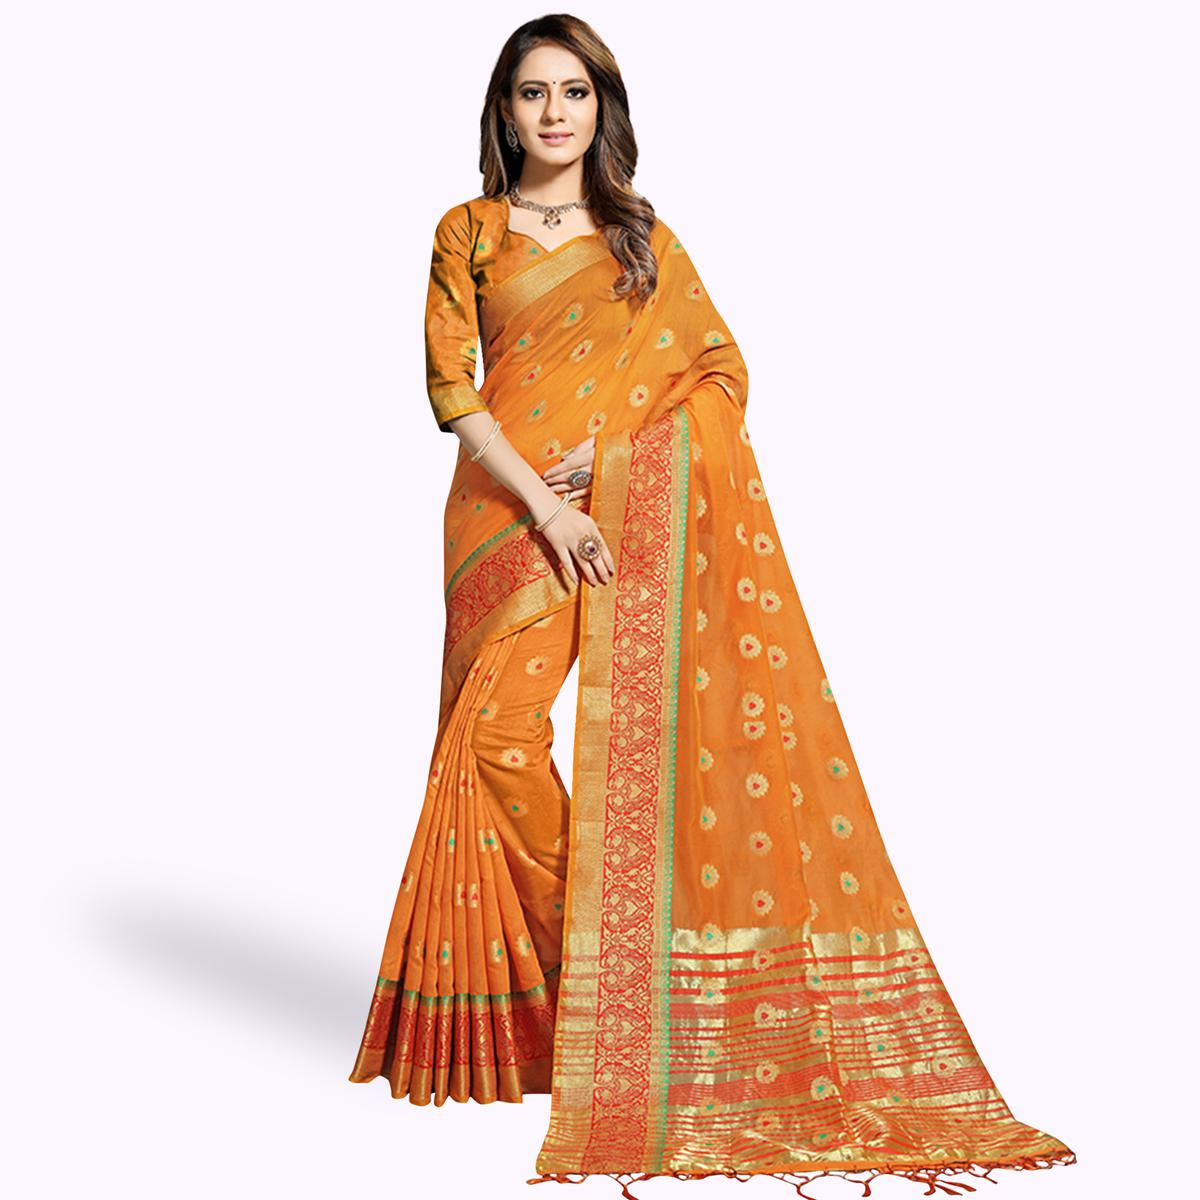 Impressive Orange Colored Festive Wear Woven Chanderi Silk Saree